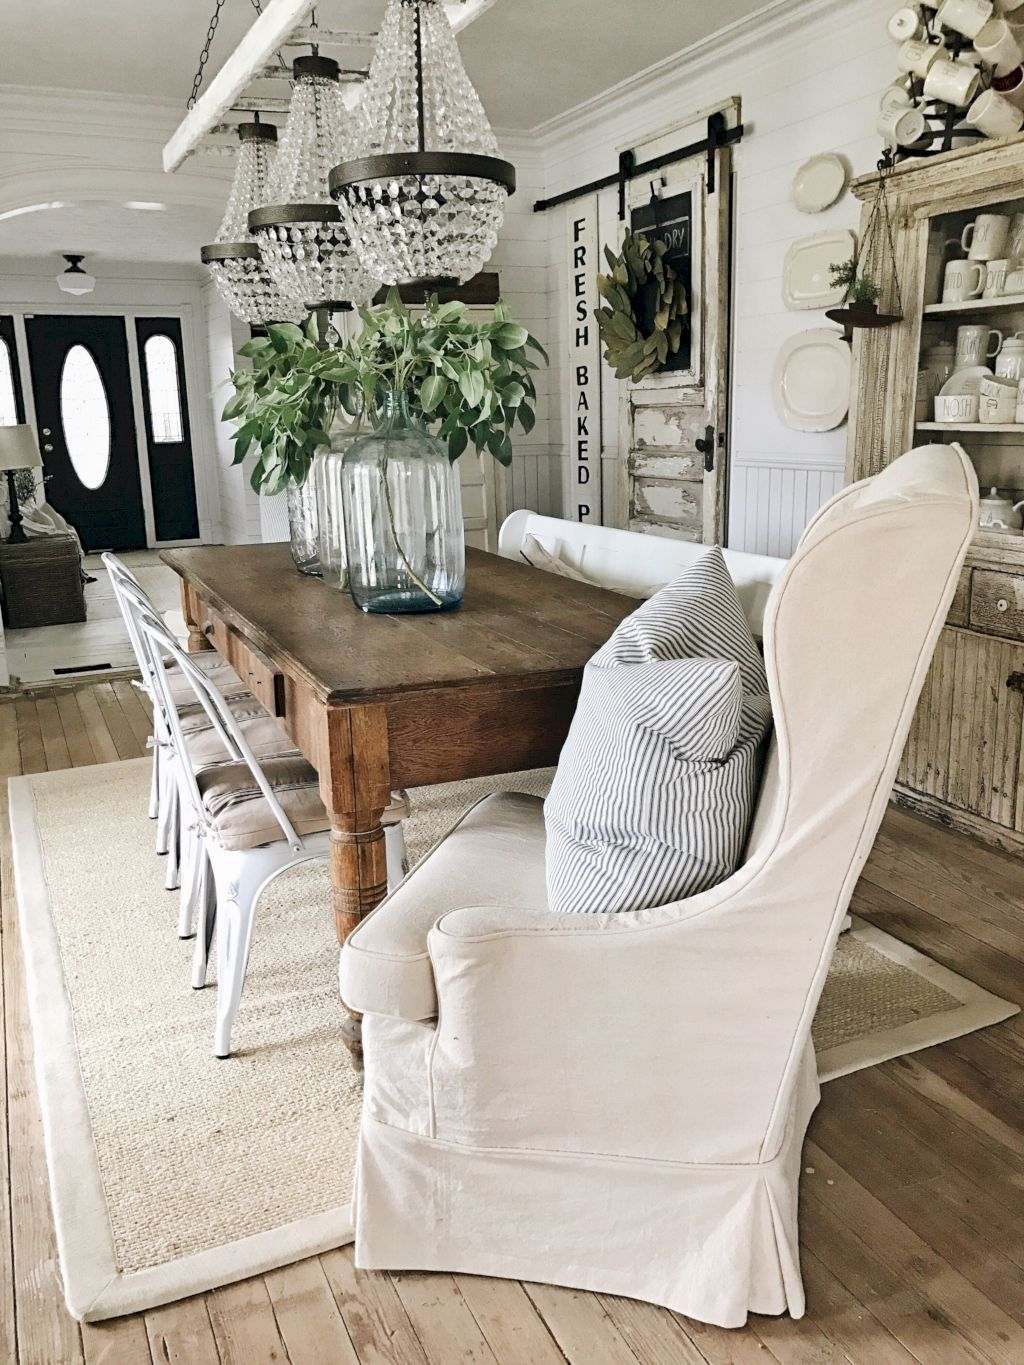 Dining Room Remodel Pictures New 40 Comfy Modern Farmhouse Dining Room Remodel Ideas  Minimalist Inspiration